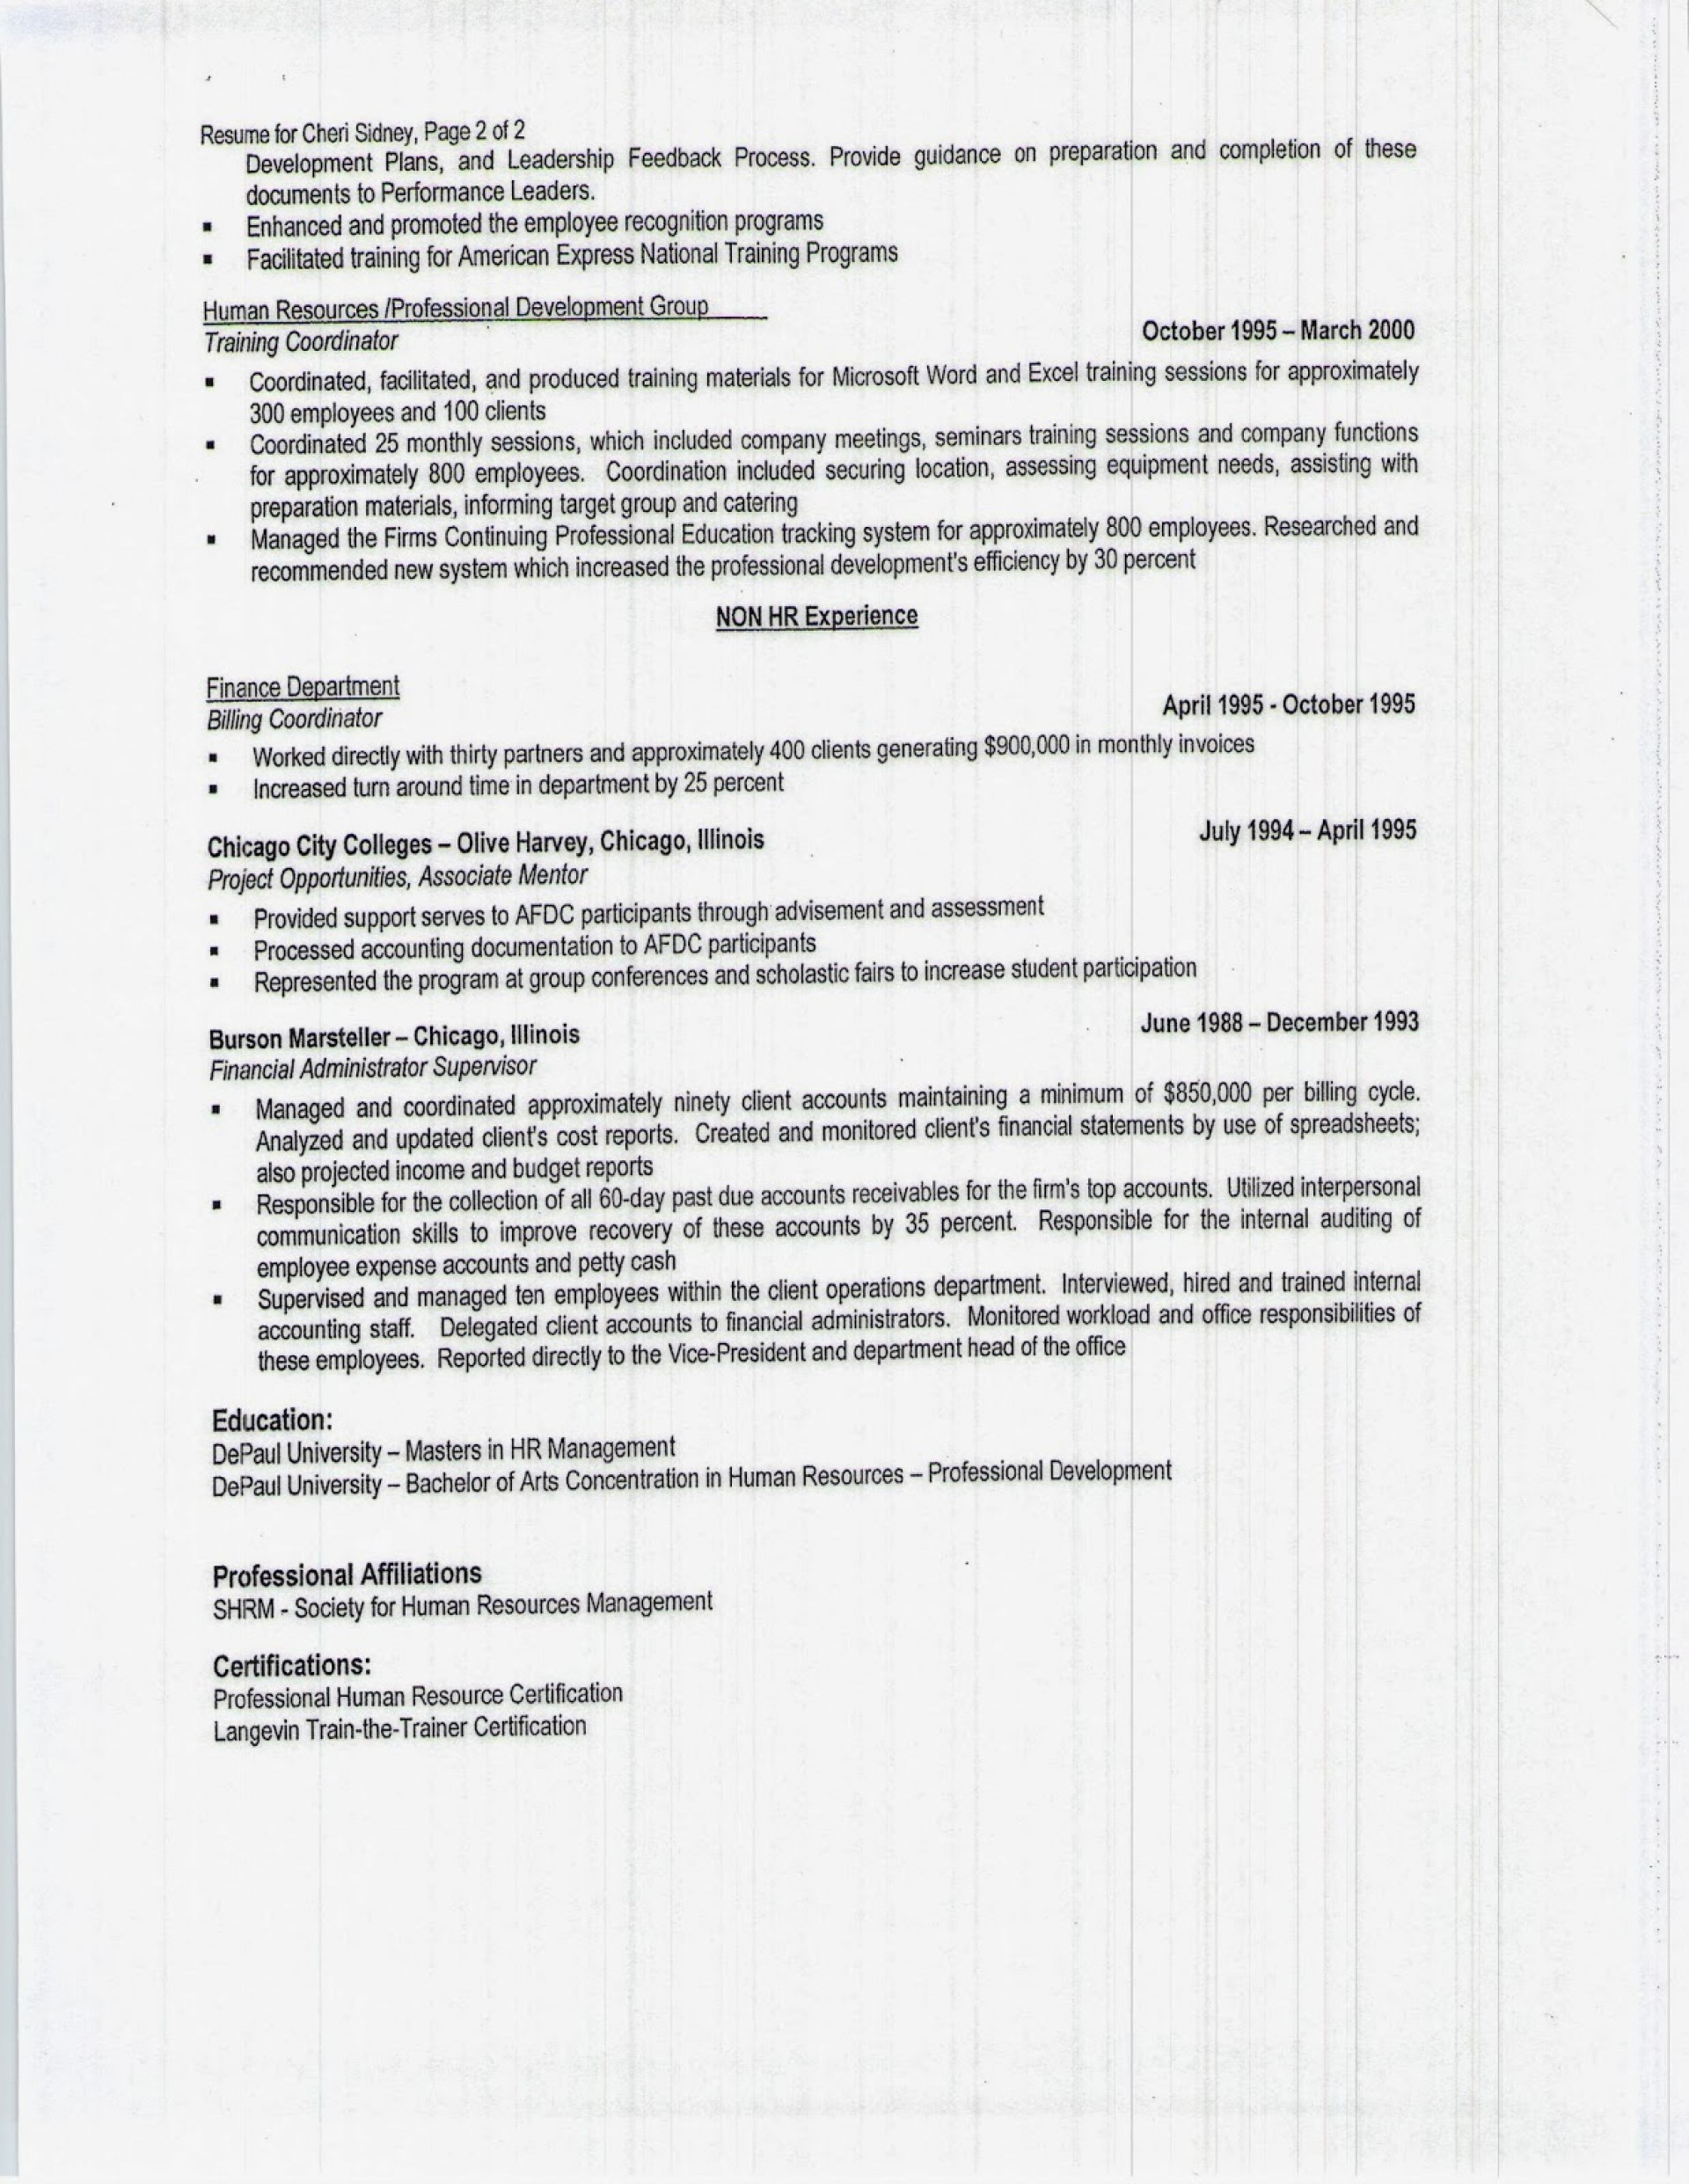 027 Essay Example Nursing Application Tips How To Write An Letter With Apply Forhip And Sidney0001 Jpg W 1237x1600px Singular Scholarship Gilman Psc Goldwater 1920